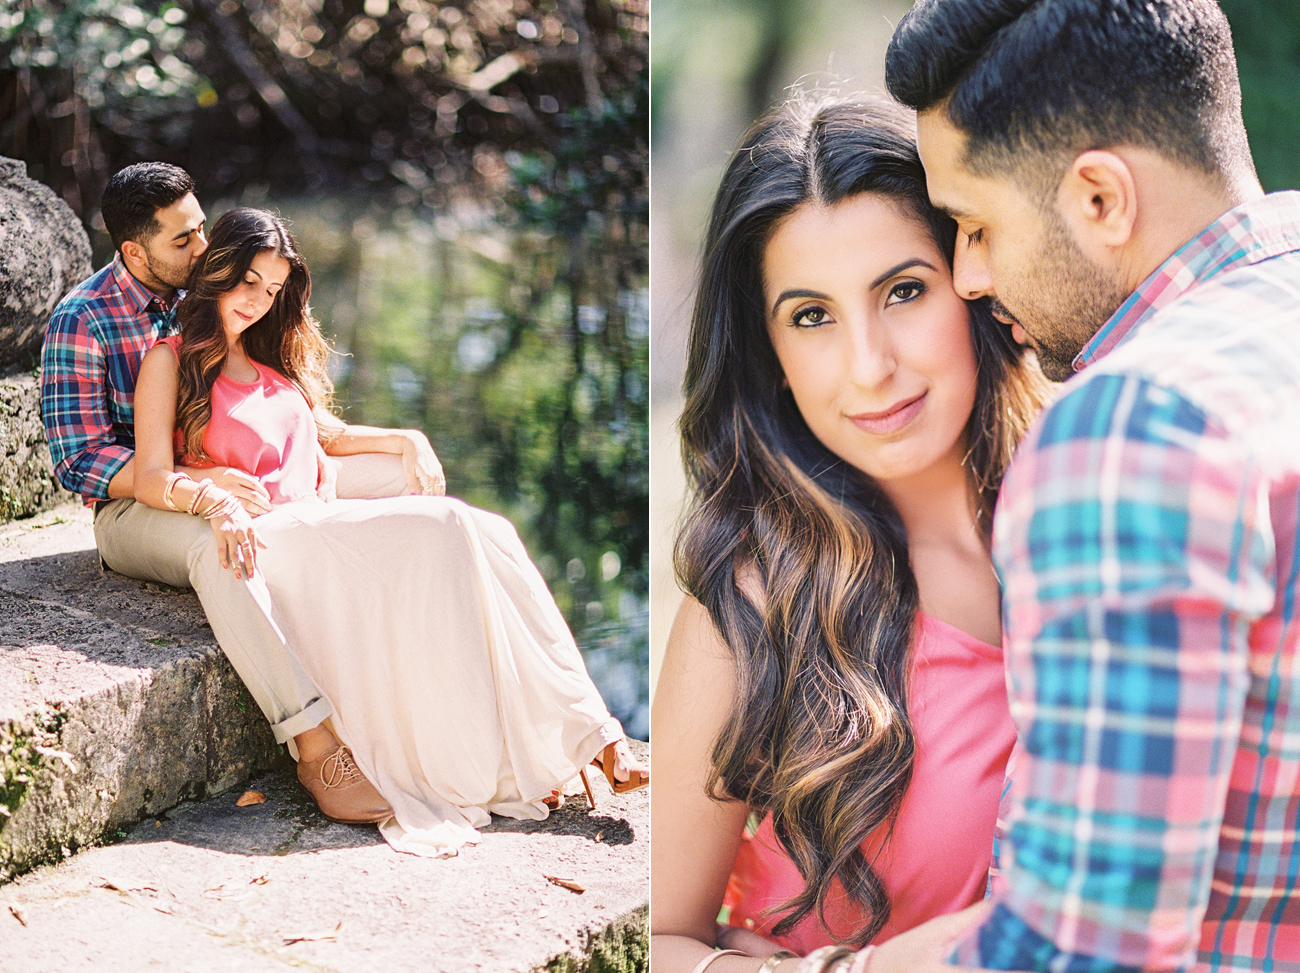 Vizcaya Museum & Gardens | Alisha's Vintage Art Engagement Session | Miami, FL, Miami Wedding Photographers | Häring Photography, Indian Wedding Photographer in Florida, Best Muslim, Hindu - South East Asian Wedding Photographers